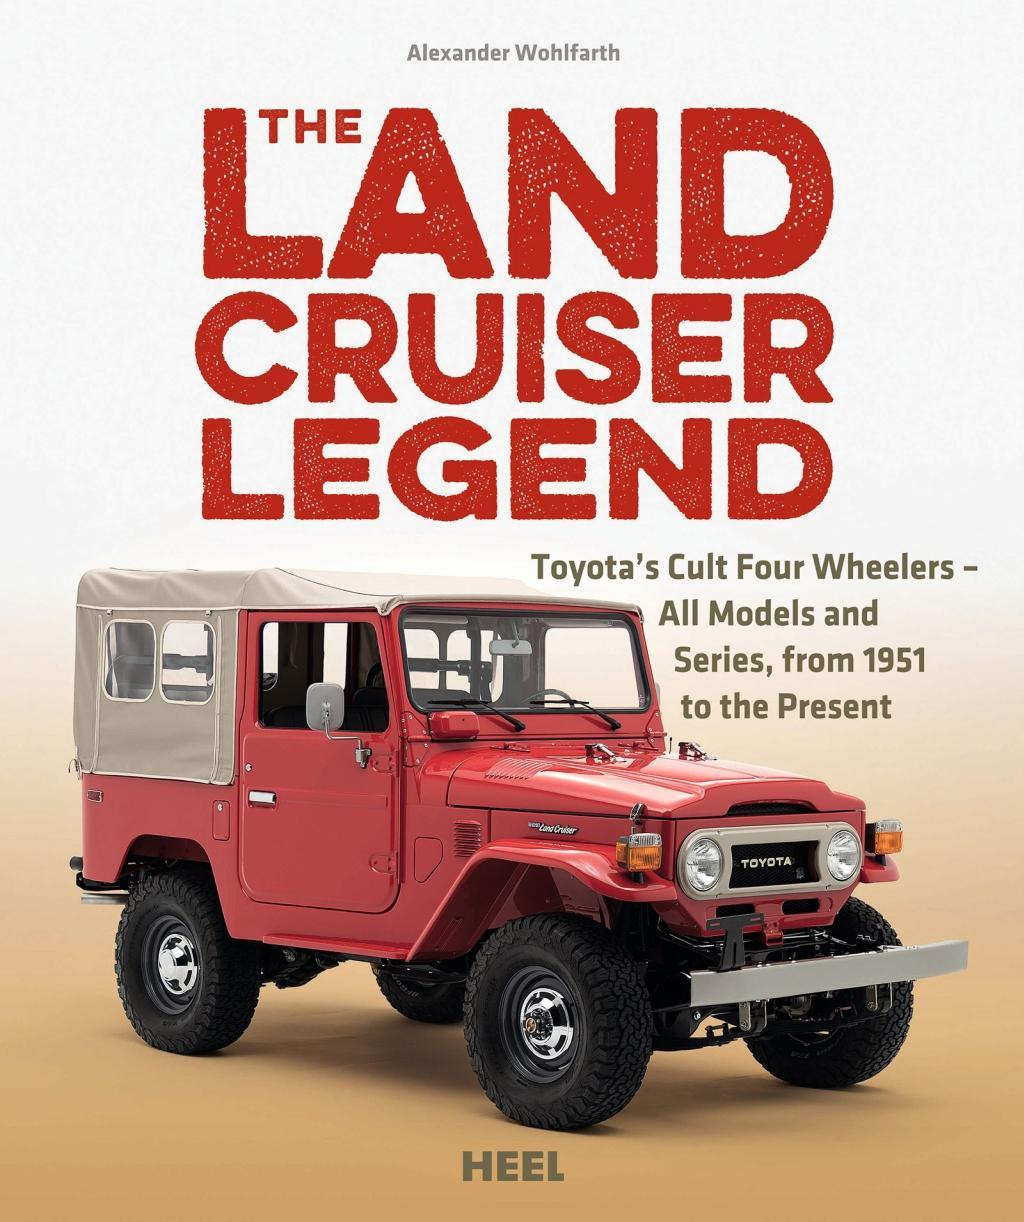 The Landcruiser Legend: Toyota's Cult Four-Wheel-Drive Vehicles - All Models and Series, from 1951 to the Present